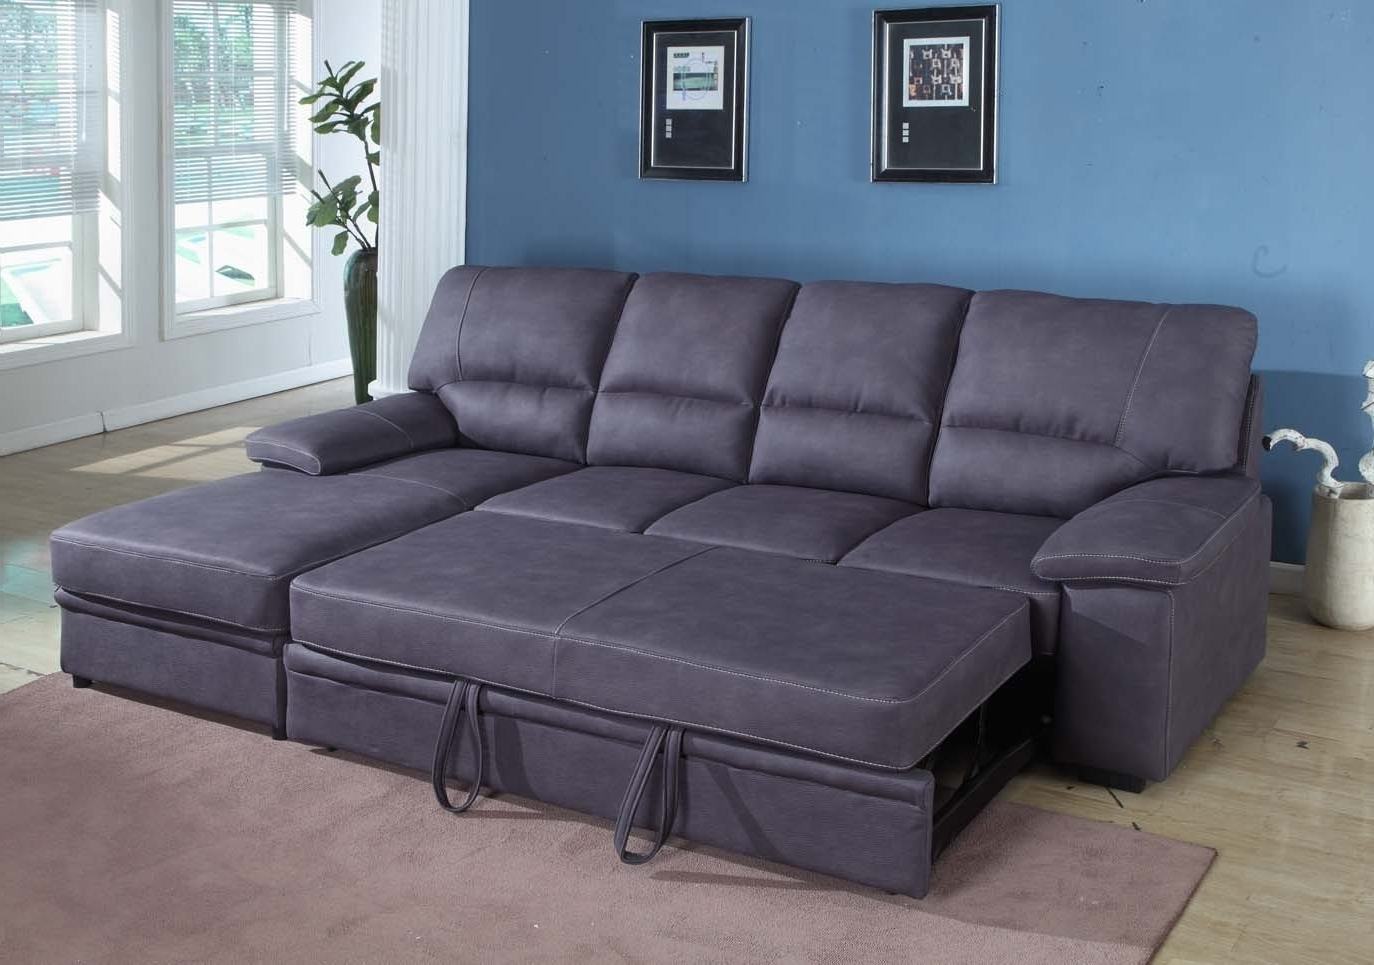 Brilliant Sectional Sleeper Sofa With Chaise Cool Living Room Intended For Most Recent Chaise Sleepers (View 4 of 15)